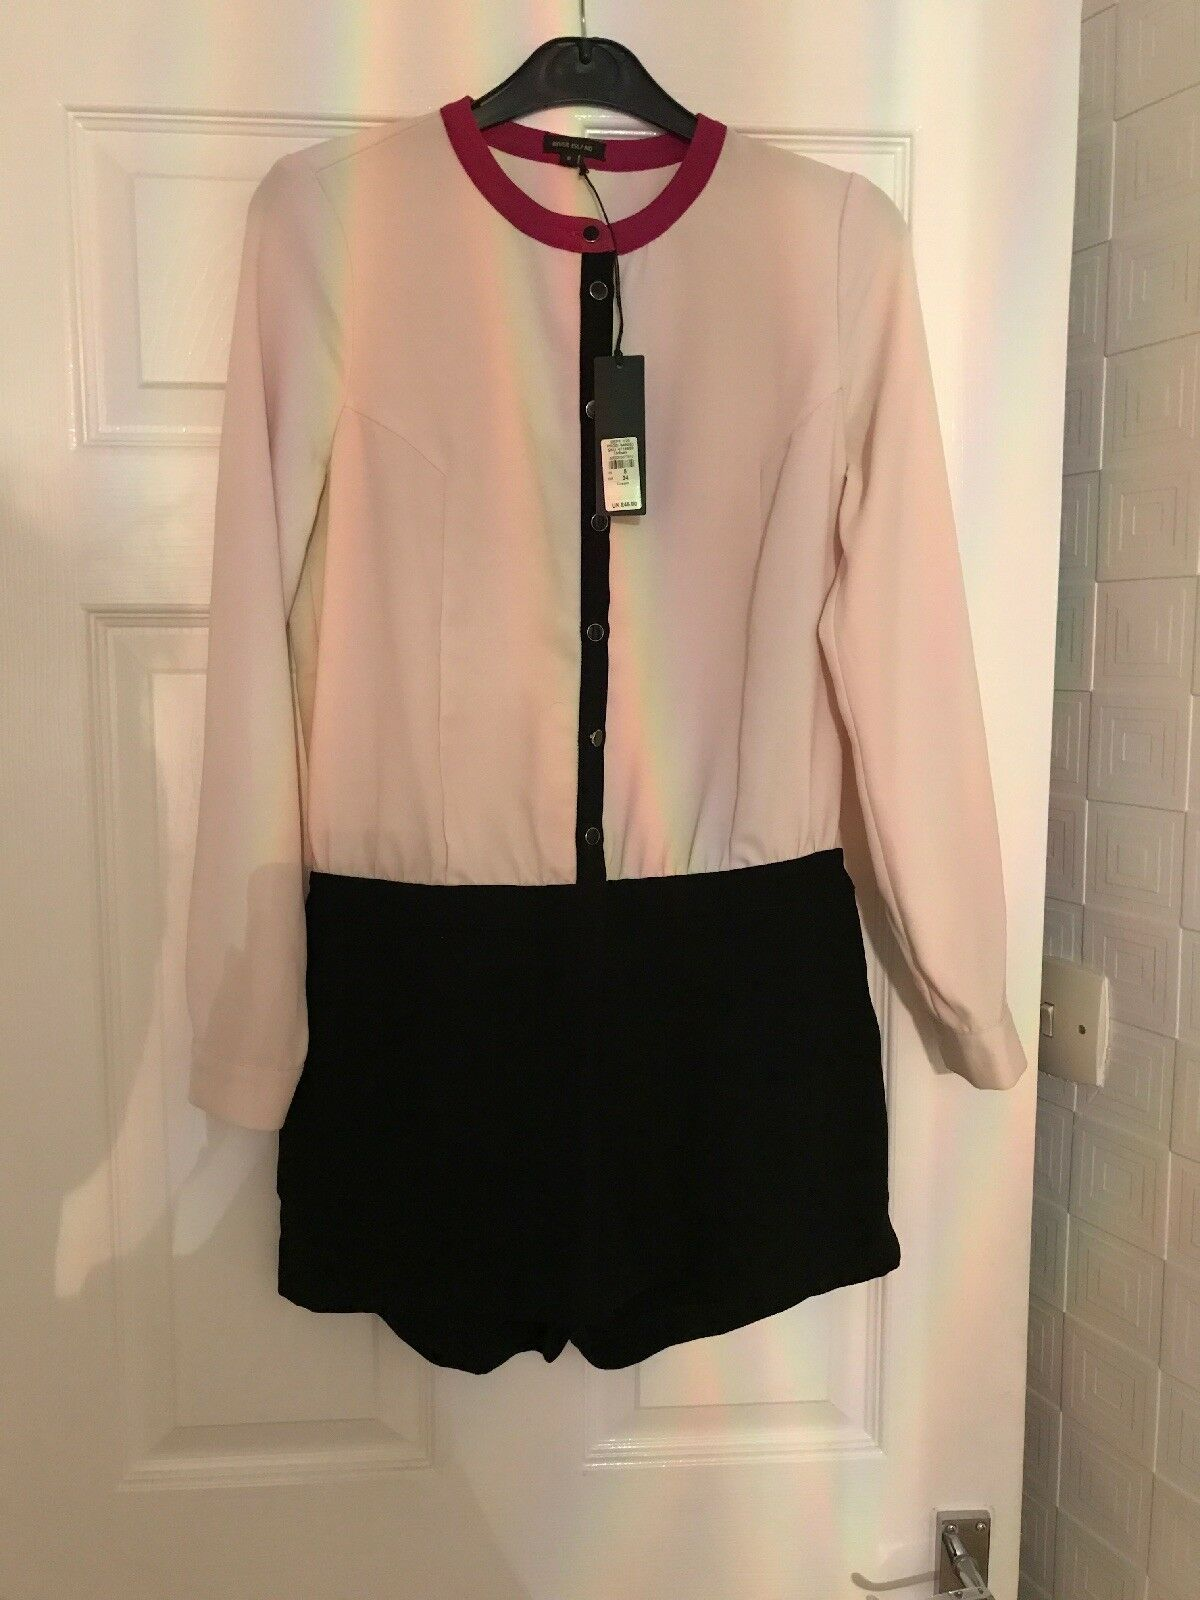 River island playsuit size 8 Rrp